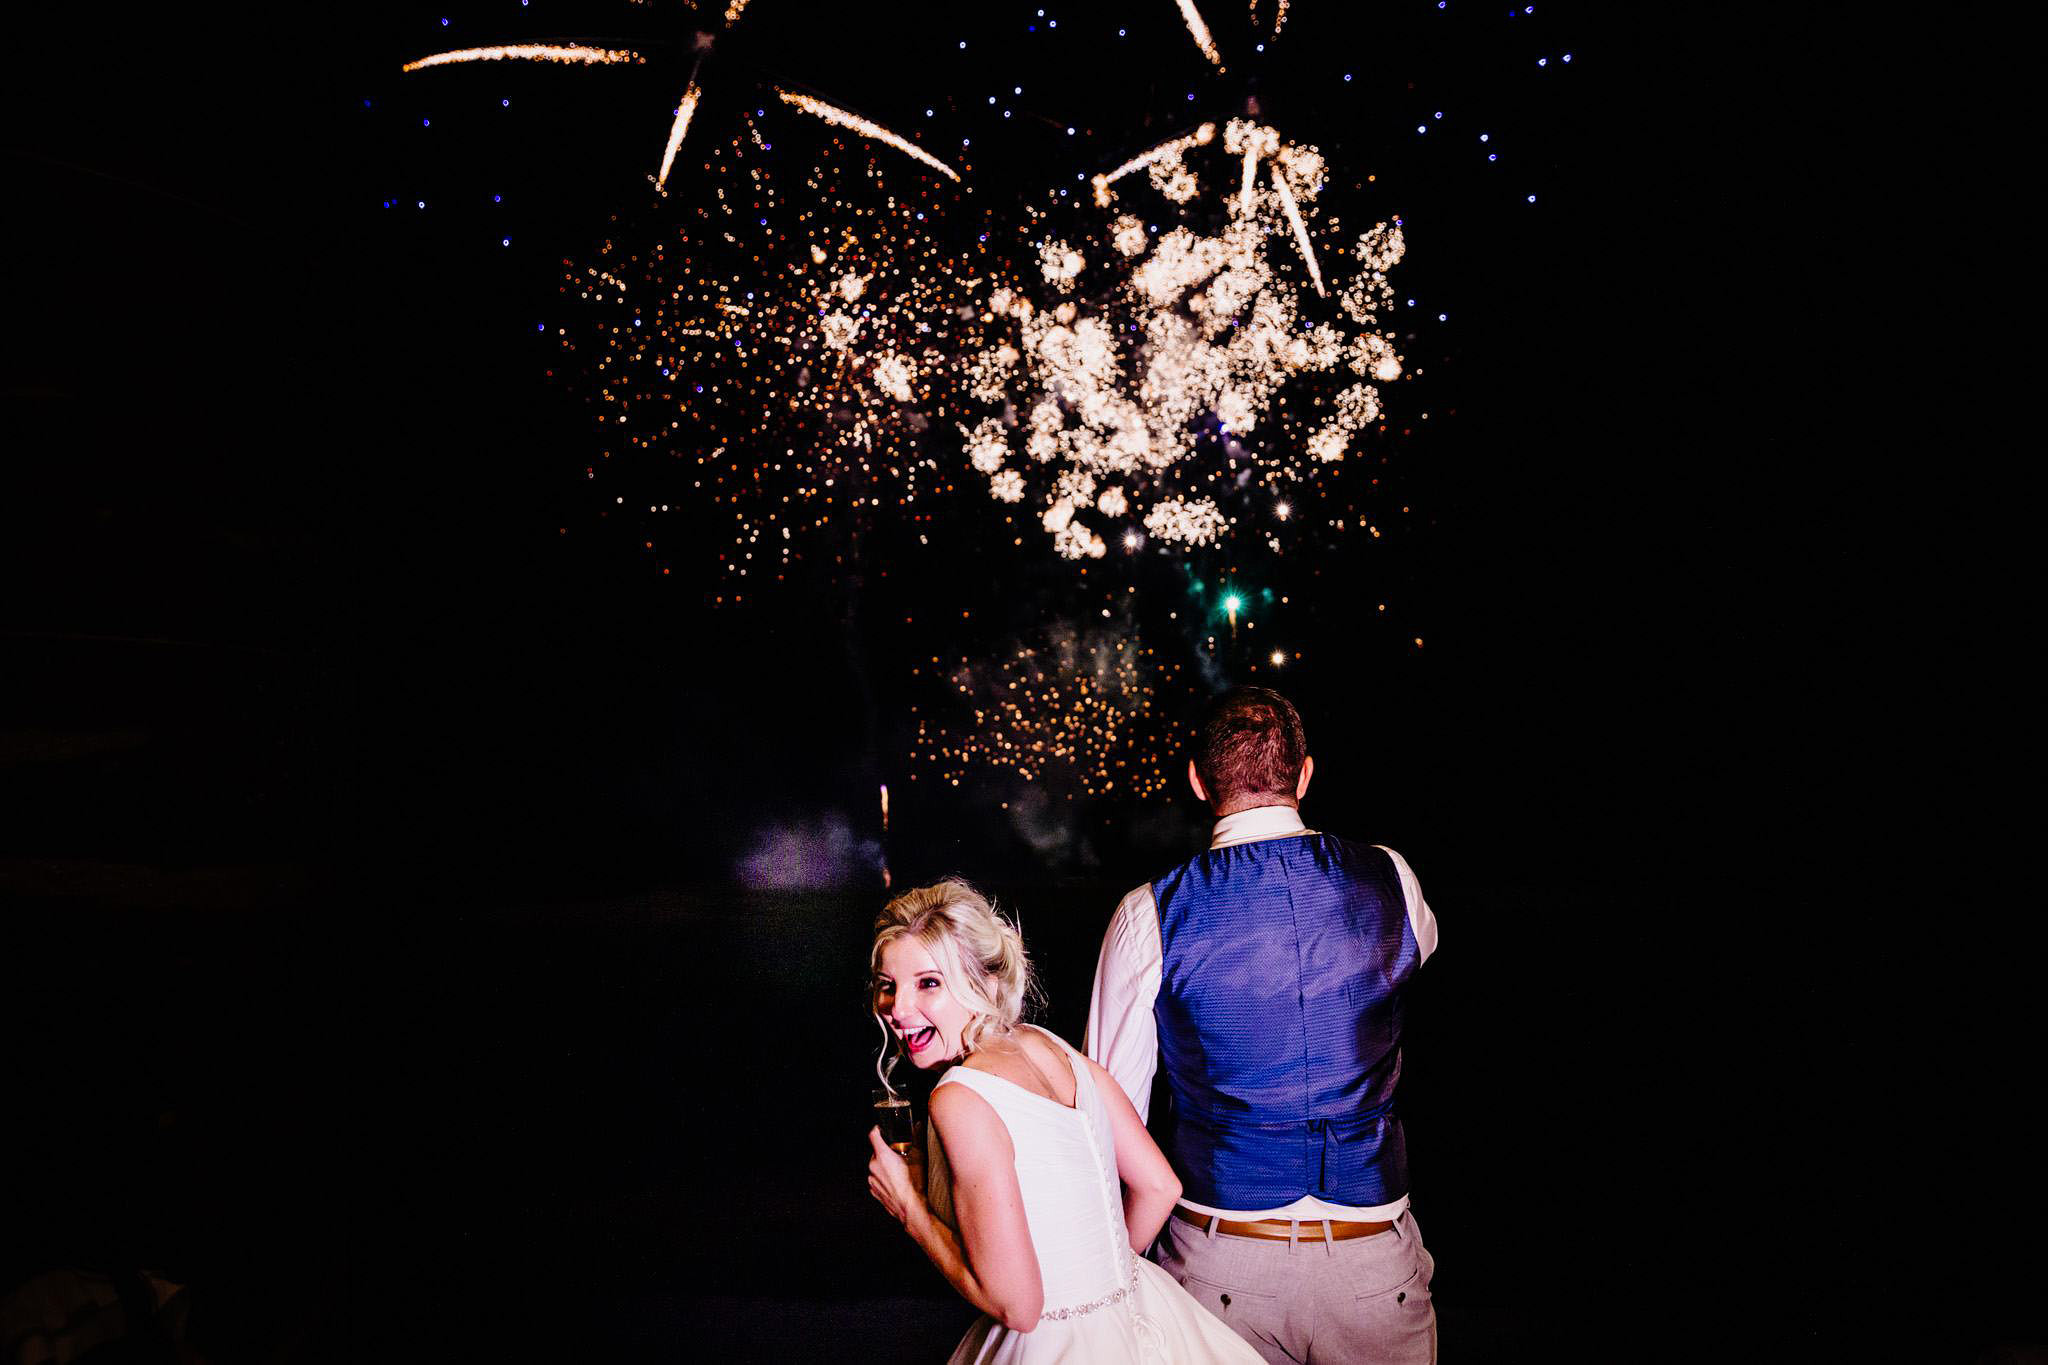 a happy bride enjoying fireworks